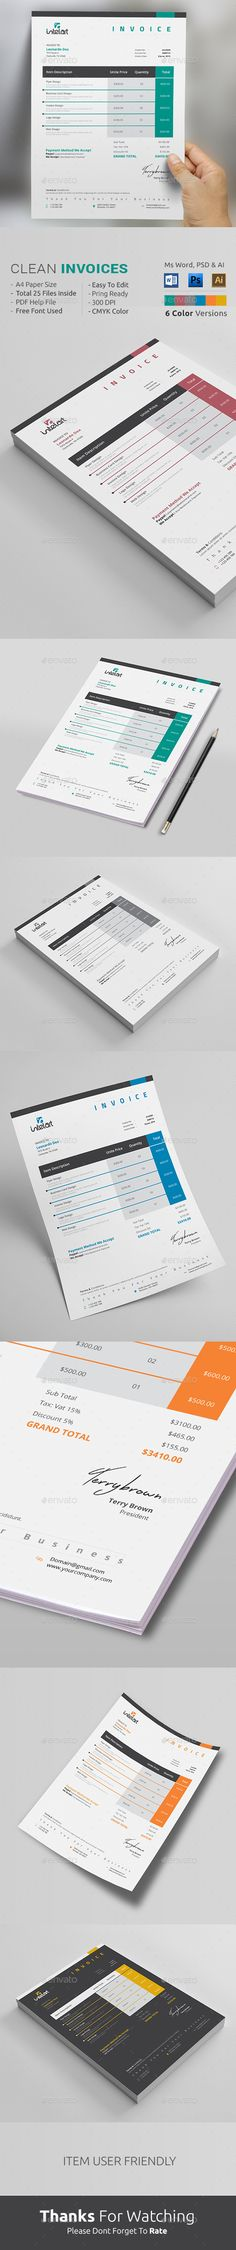 91 best Invoices images on Pinterest in 2018   Invoice design     invoice template ai free Such a cute invoice template  FREE psd  about to  make a form PDF